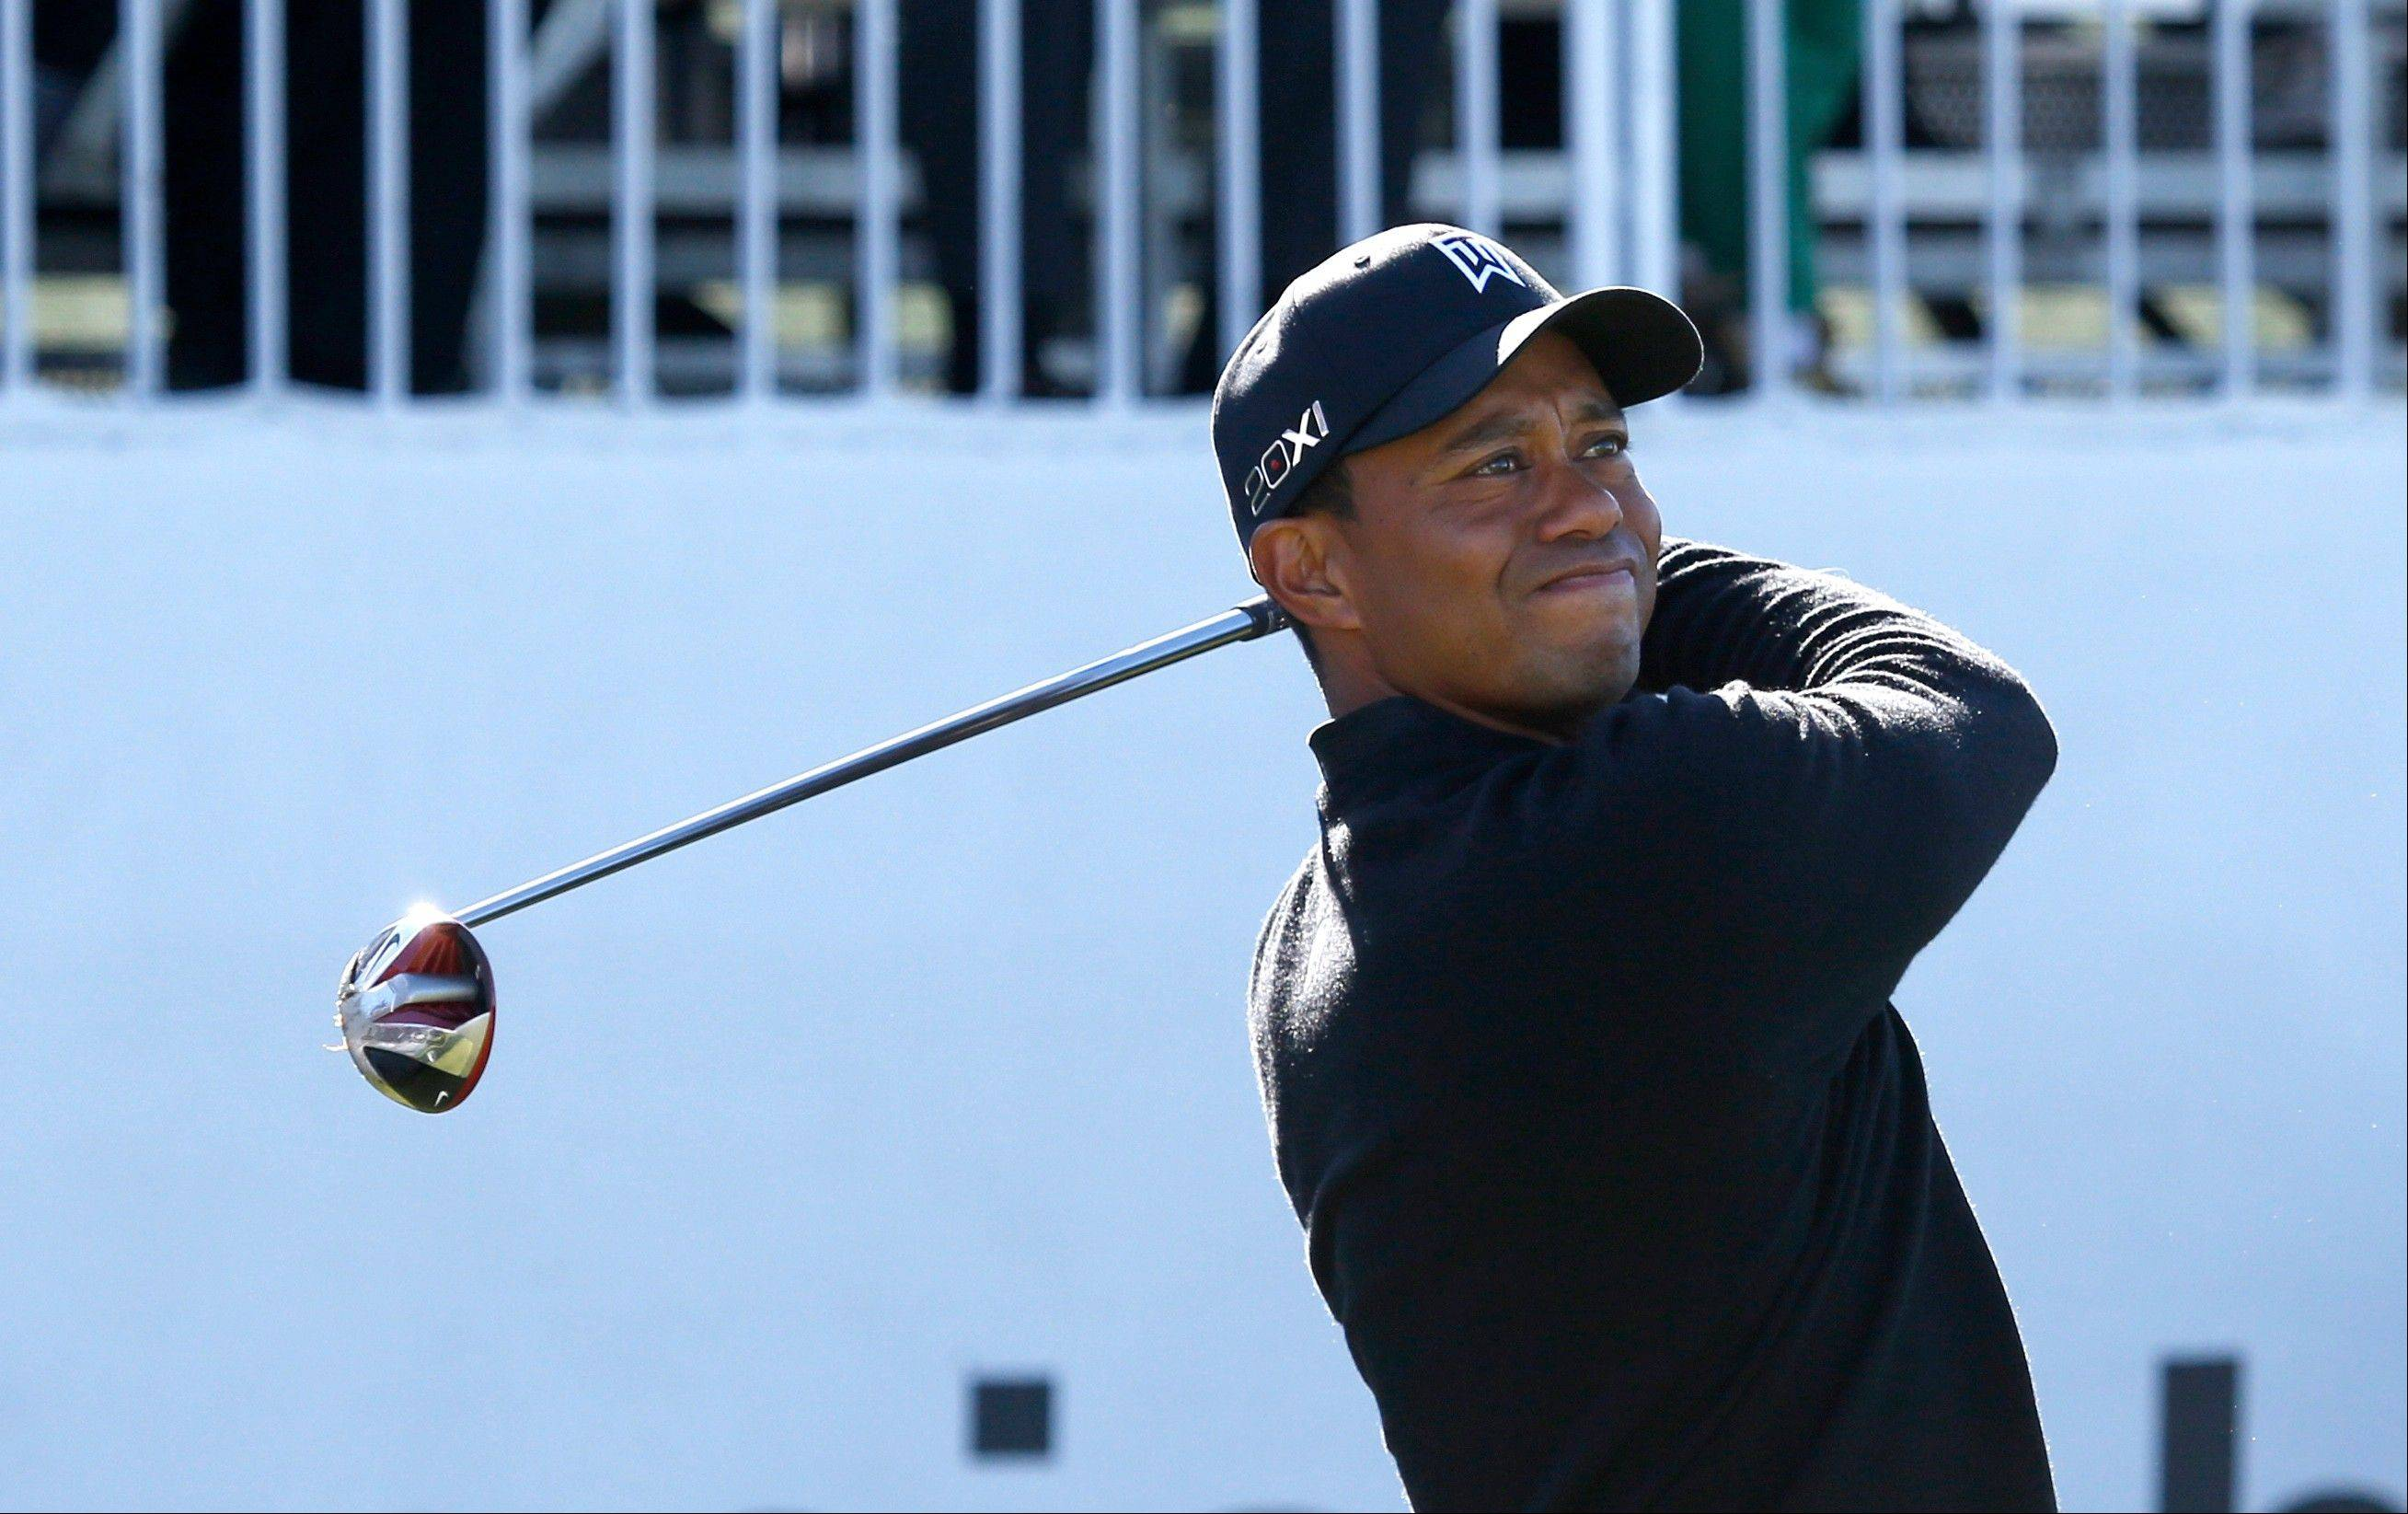 Tiger Woods watches his tee shot on the 1st hole.